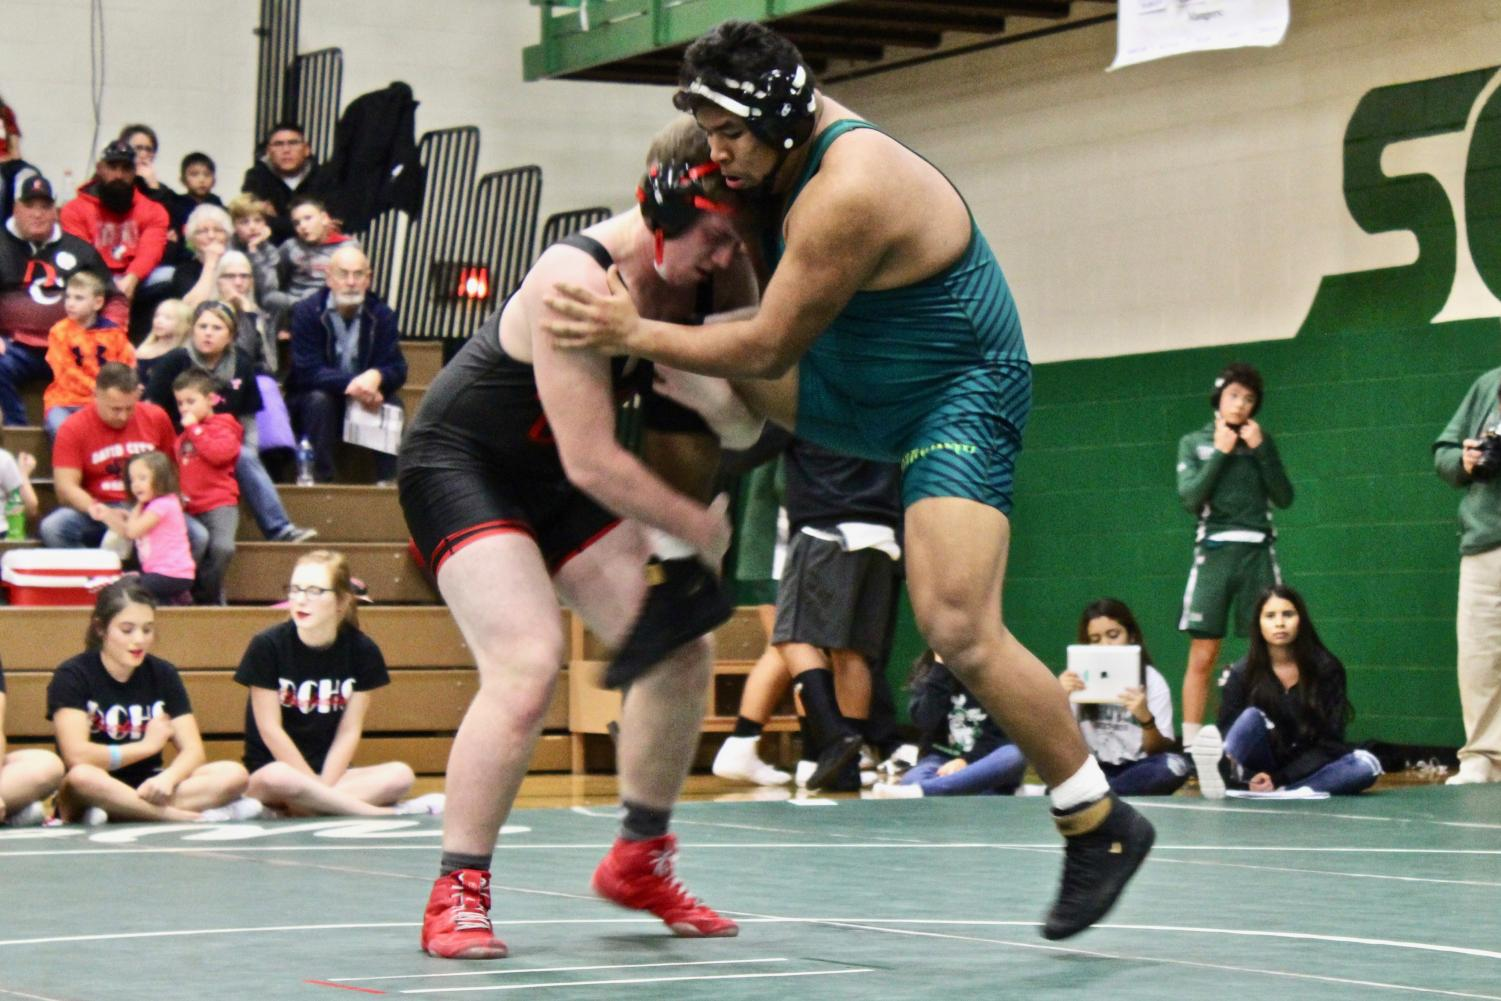 Maganda was undefeated in his 38 matches this past season.